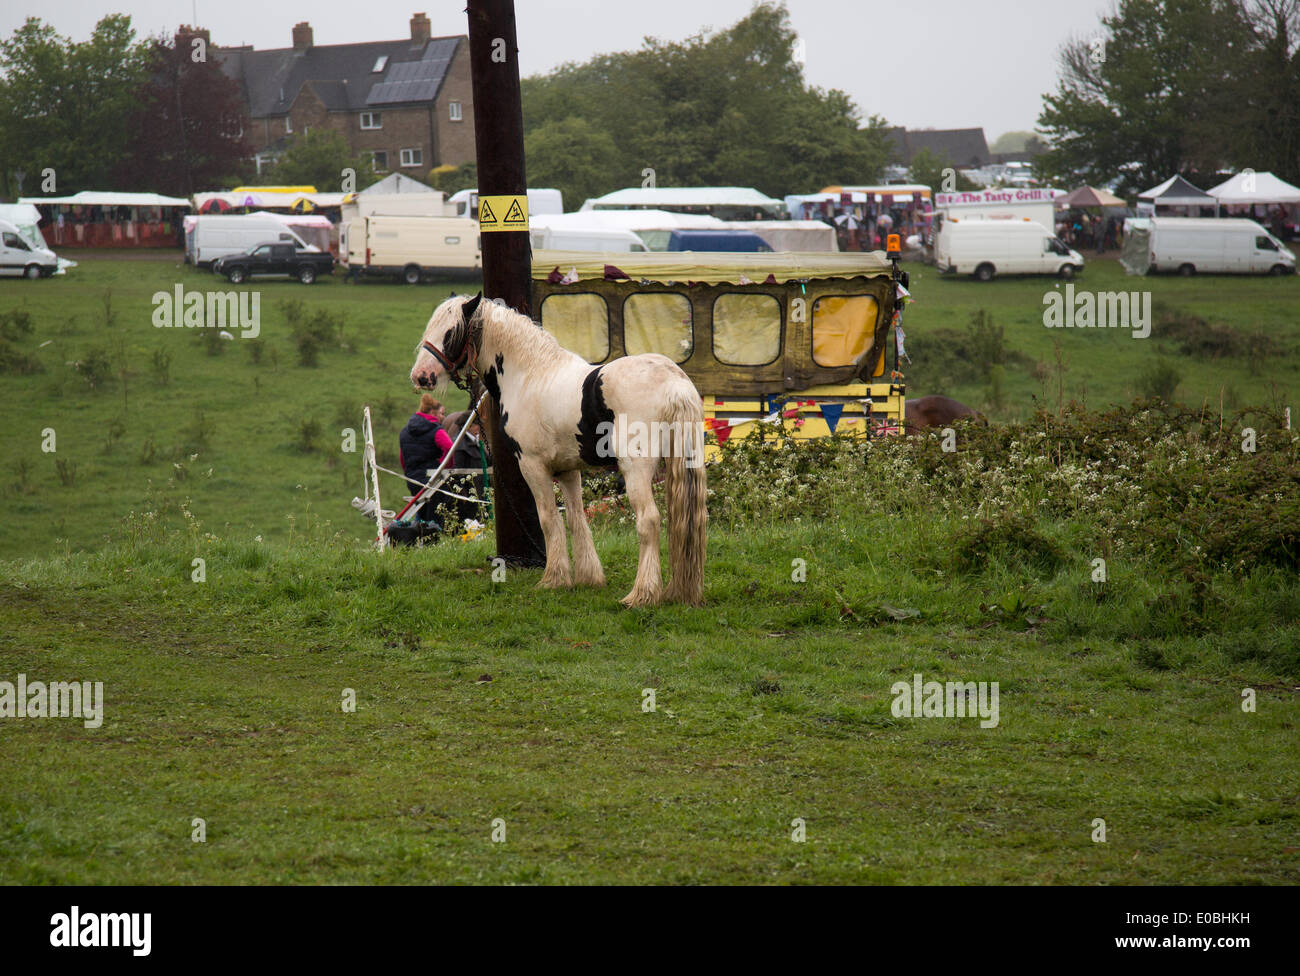 Gipsy Horse Fair Stock Photos &amp- Gipsy Horse Fair Stock Images - Alamy